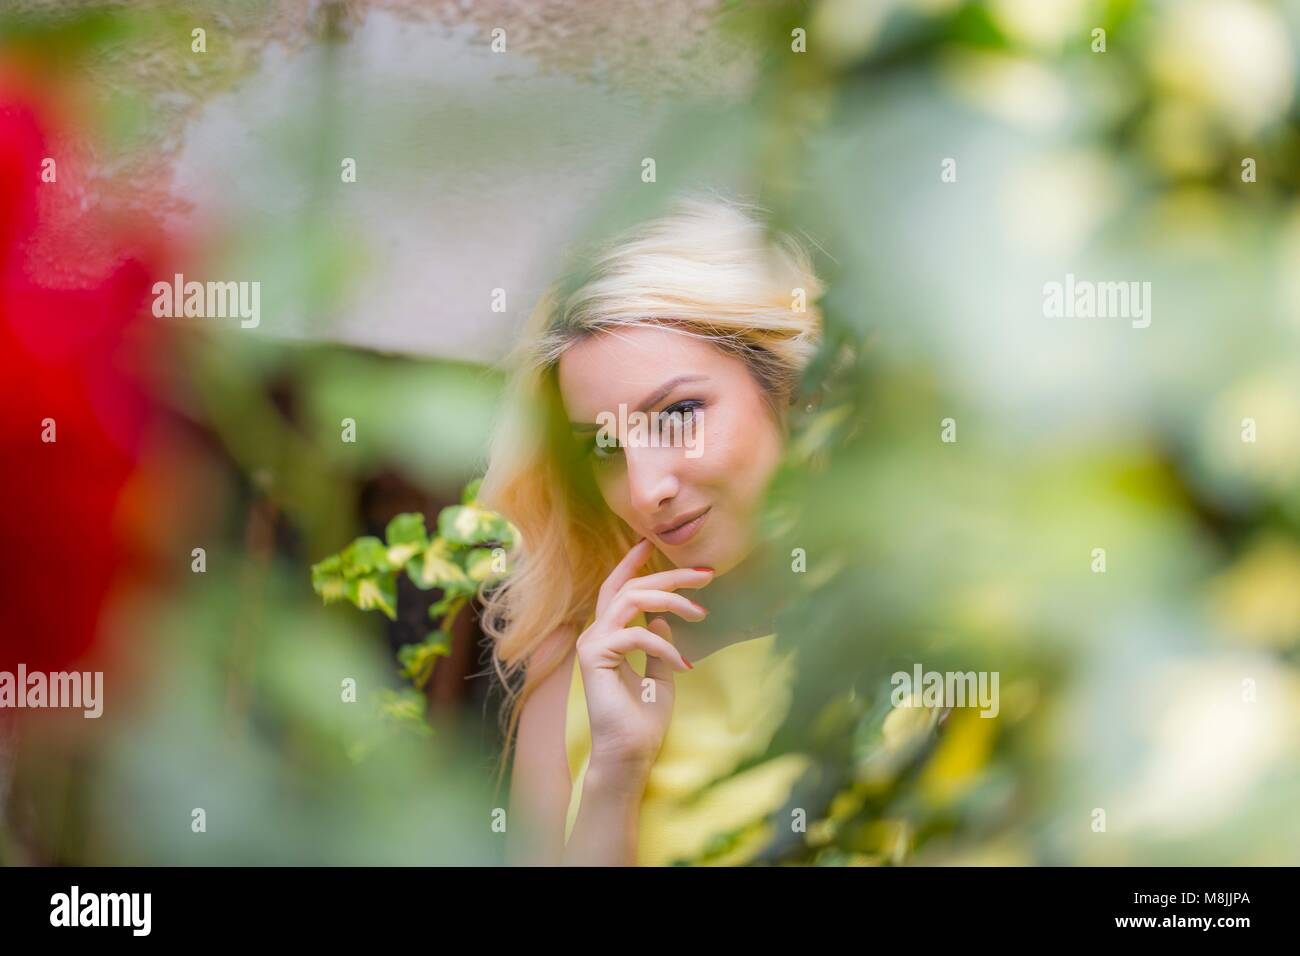 Young woman in nature smiling looking at camera forest trees isolated obscured face - Stock Image